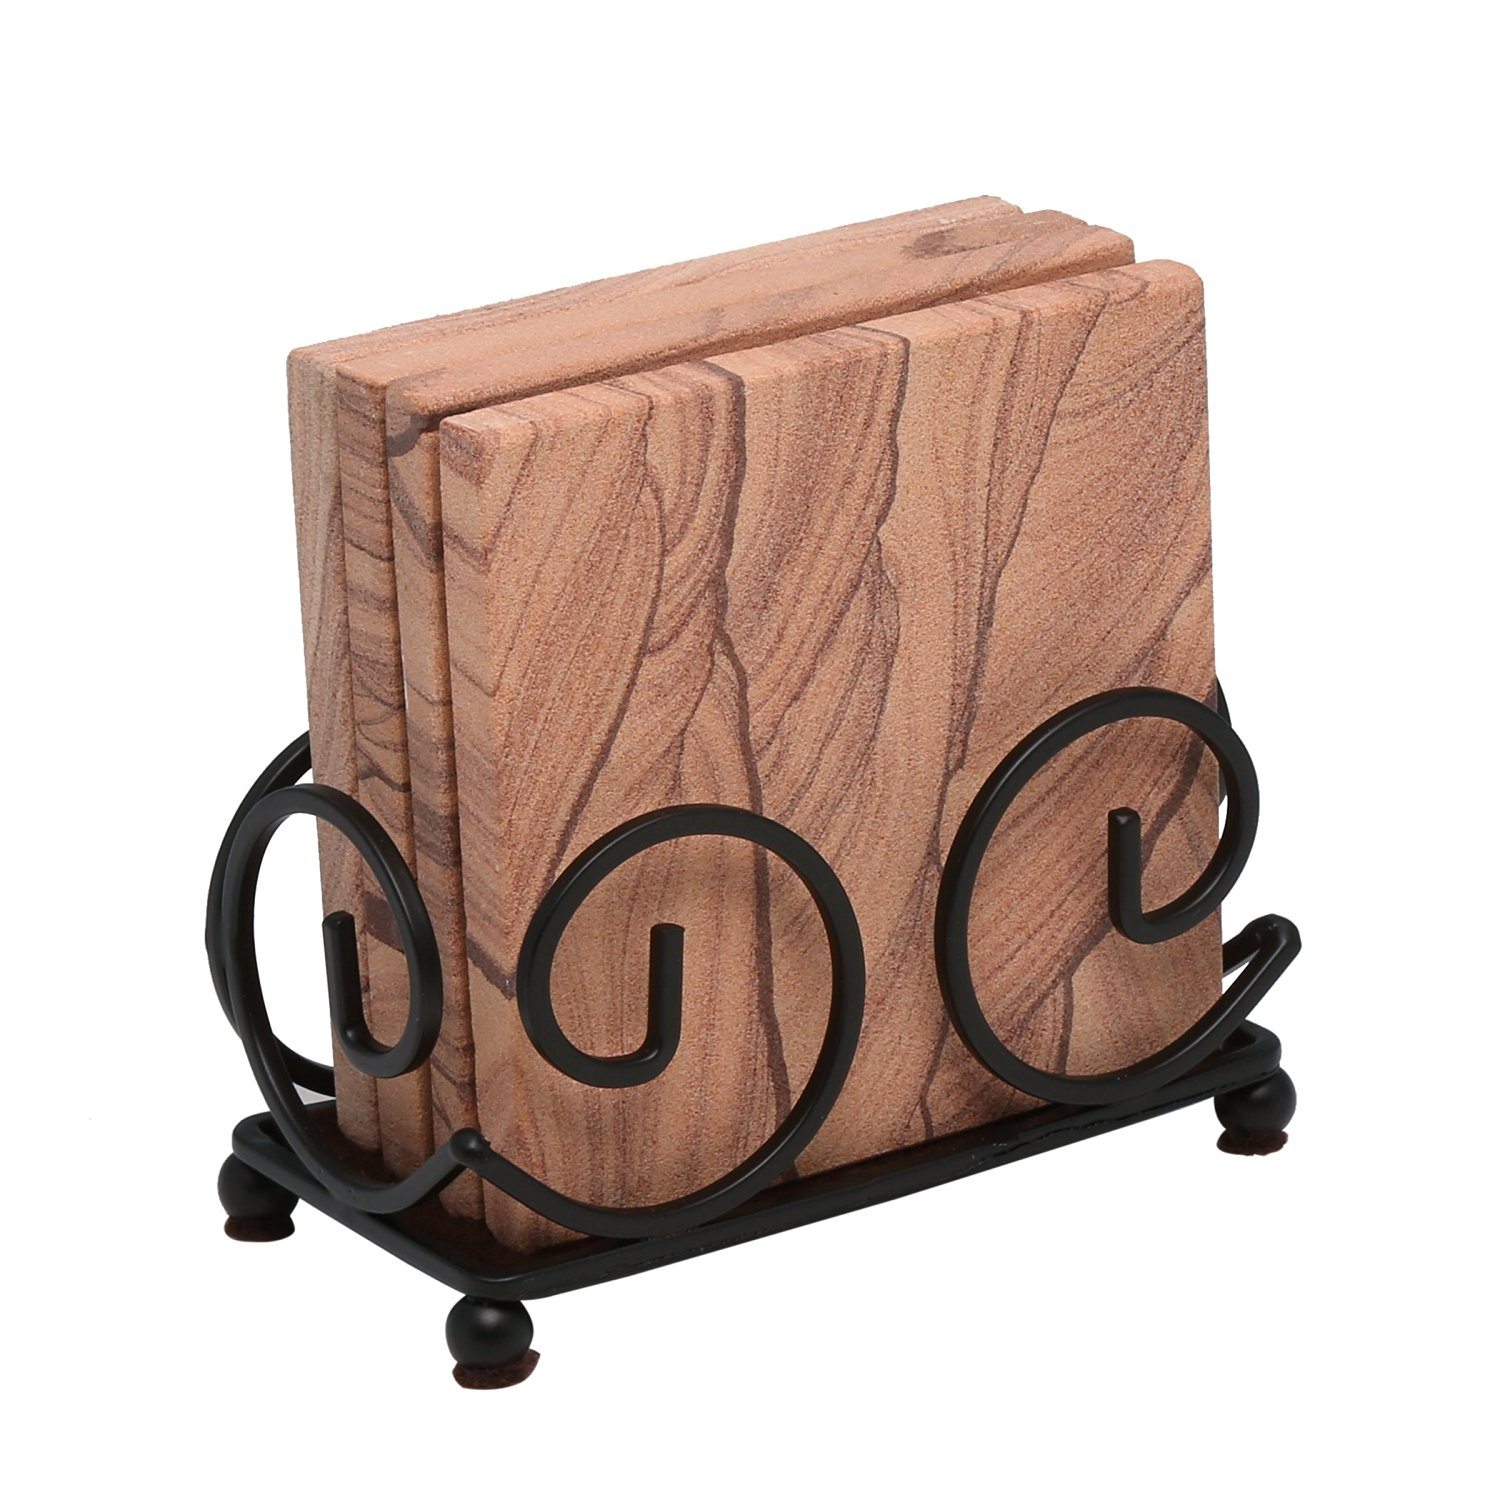 Thirstystone Sandstone Coasters with Wrought Iron Holder Included, Multicolor